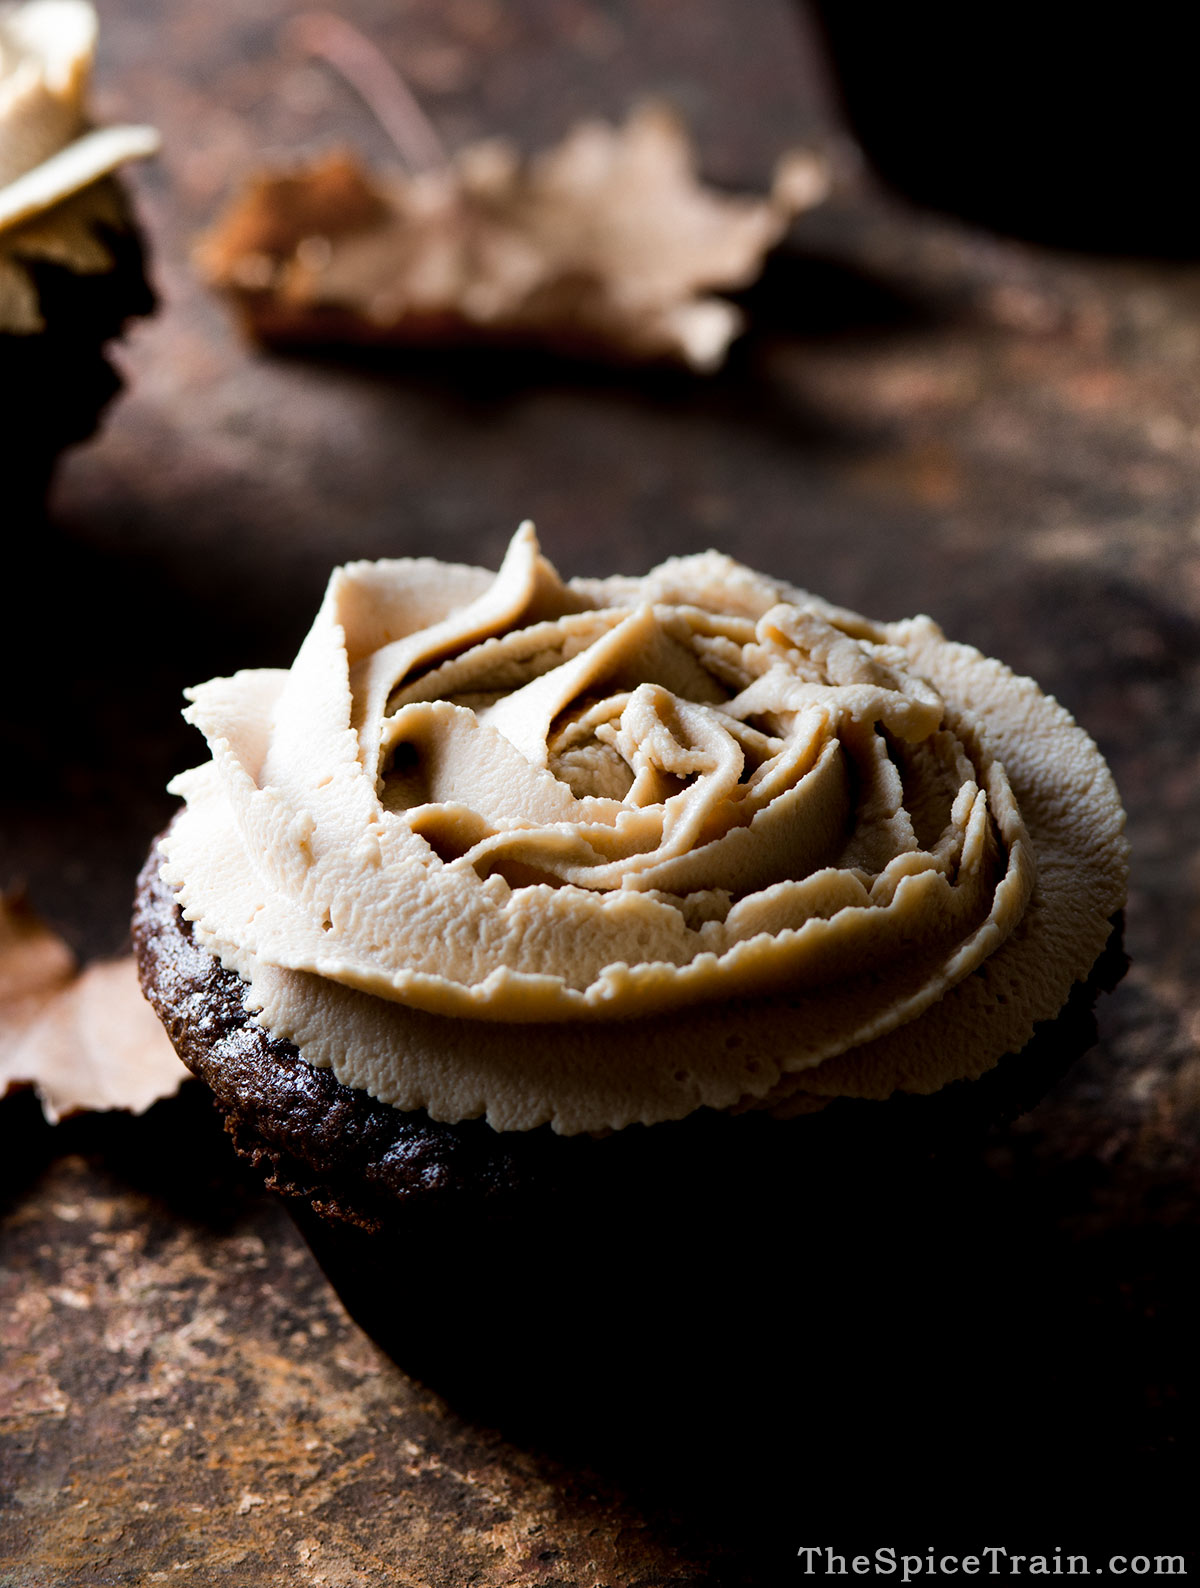 A chocolate cupcake topped with piped mascarpone frosting.